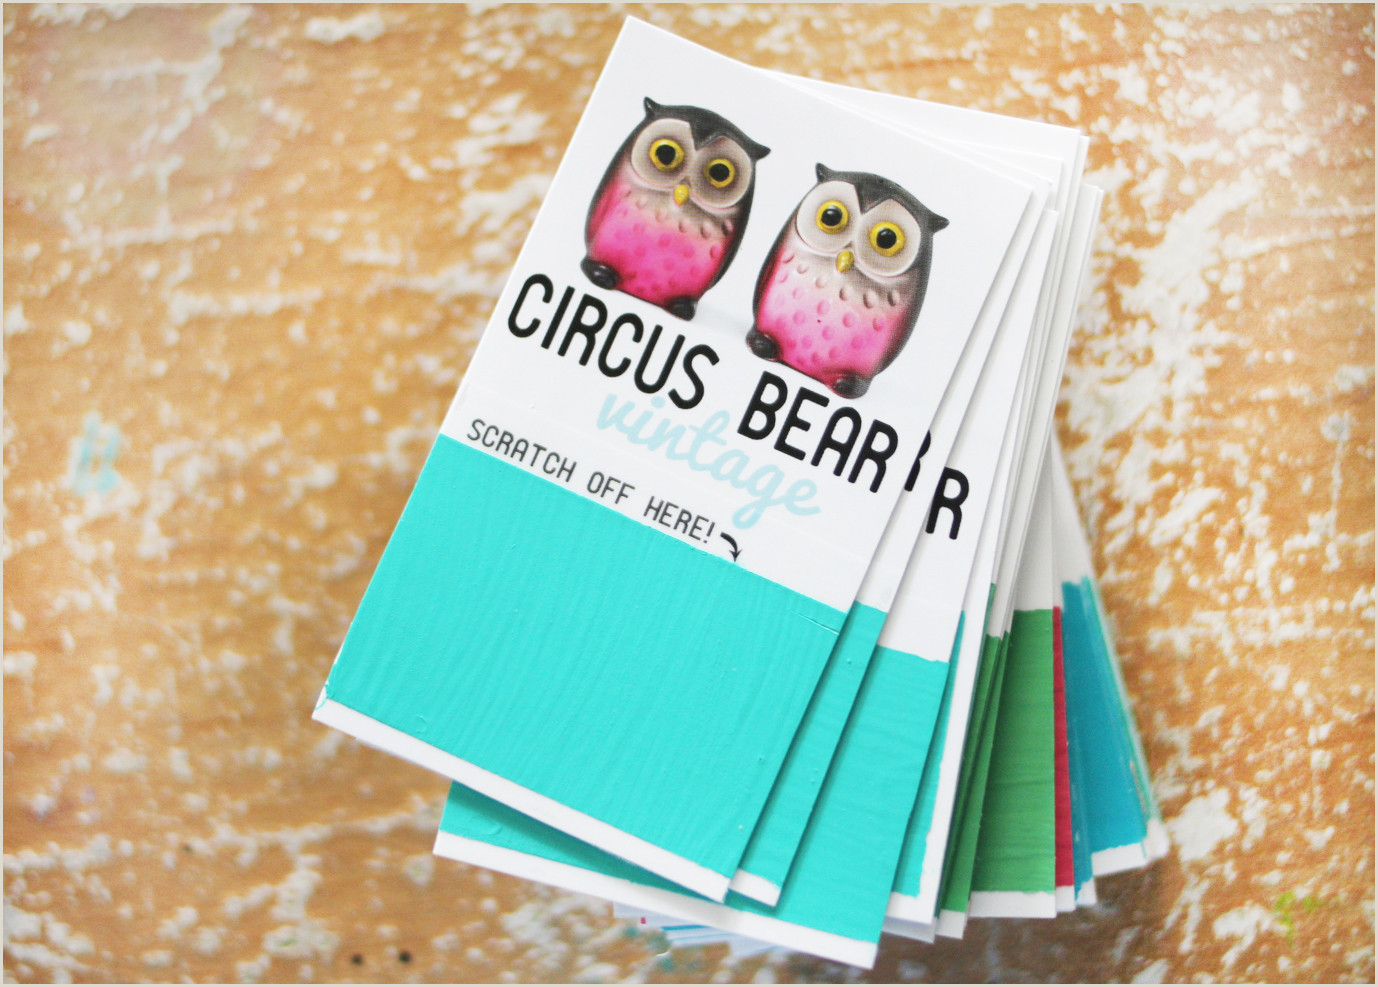 Best Business Cards For Crafters 4 Handmade Business Card Ideas For Craft Sellers Creative